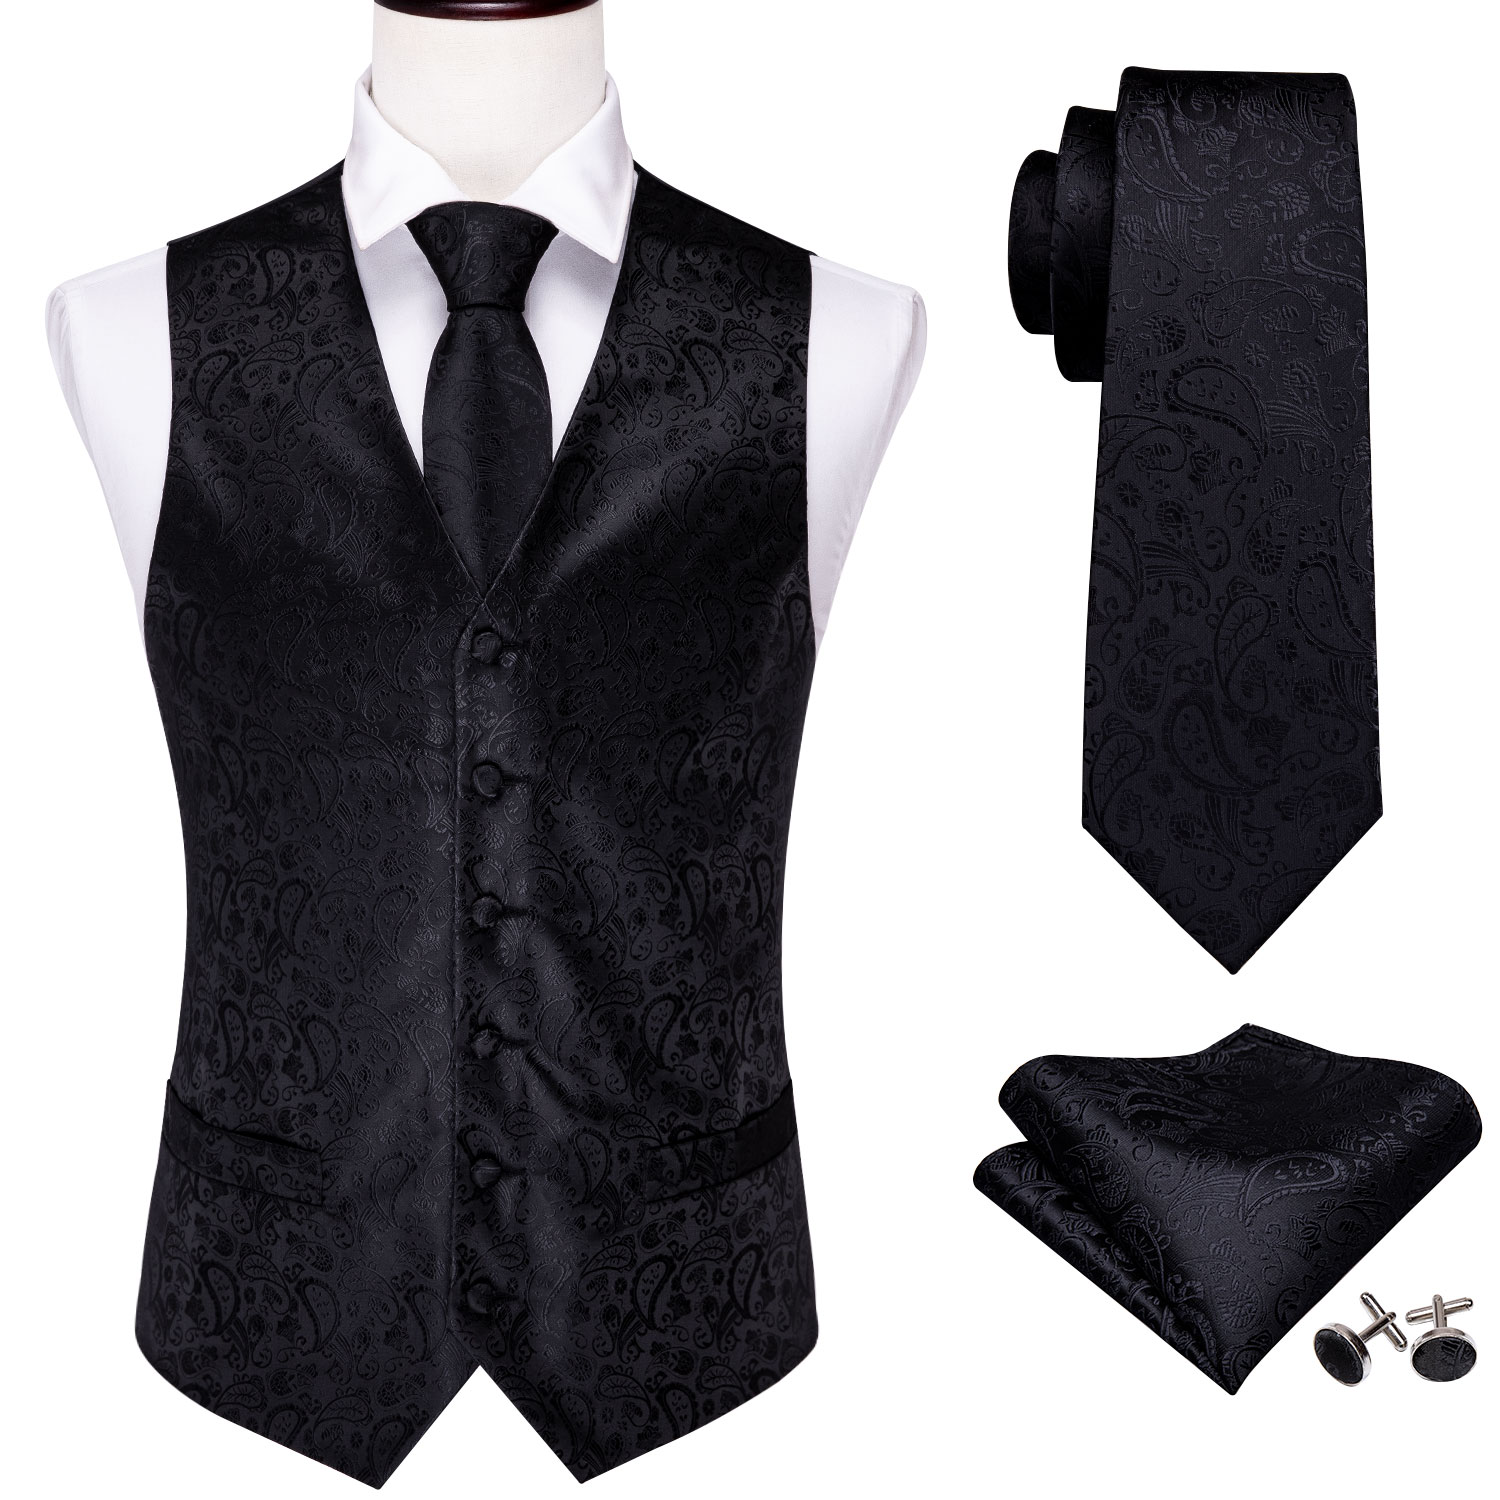 4PC Mens Silk Vest Party Wedding Black Paisley Solid Floral Waistcoat Vest Pocket Square Tie Slim Suit Set Barry.Wang BM-2014